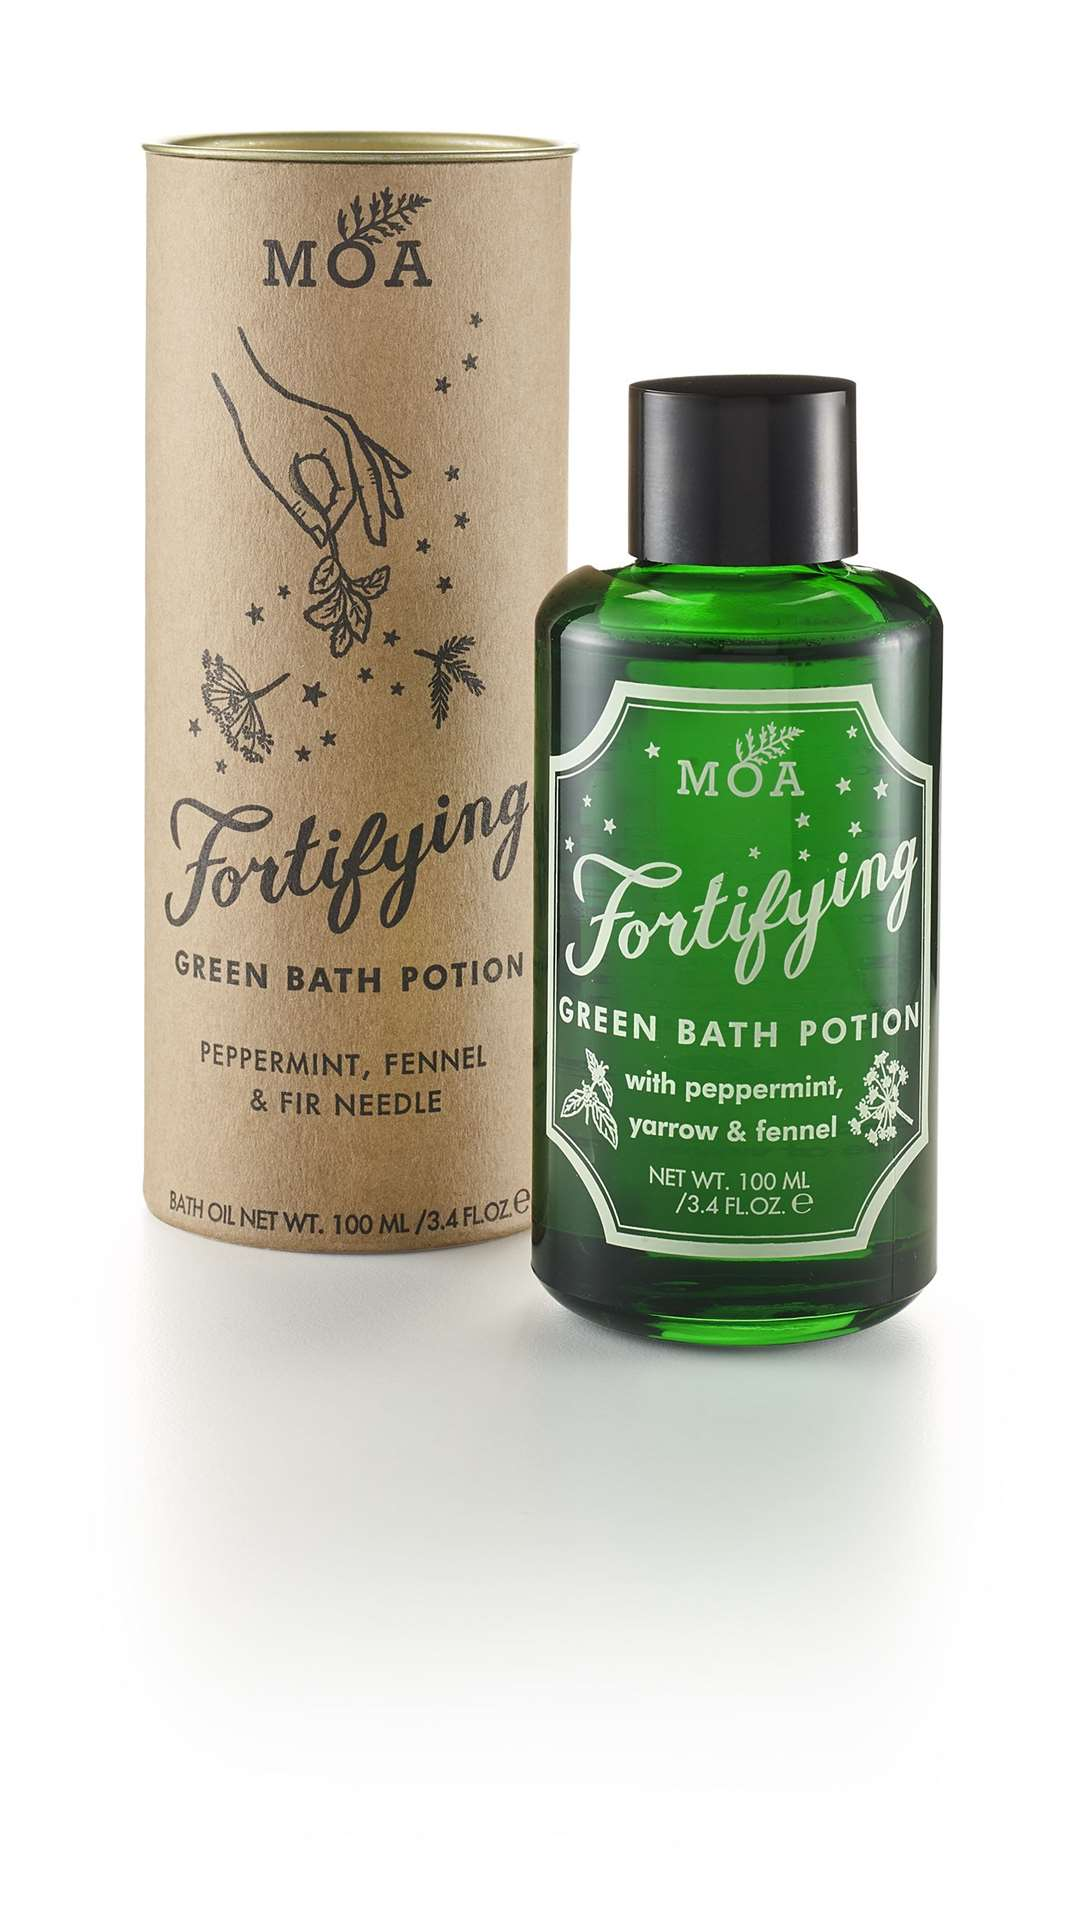 MOA Fortifying Bath Potion (34240672)